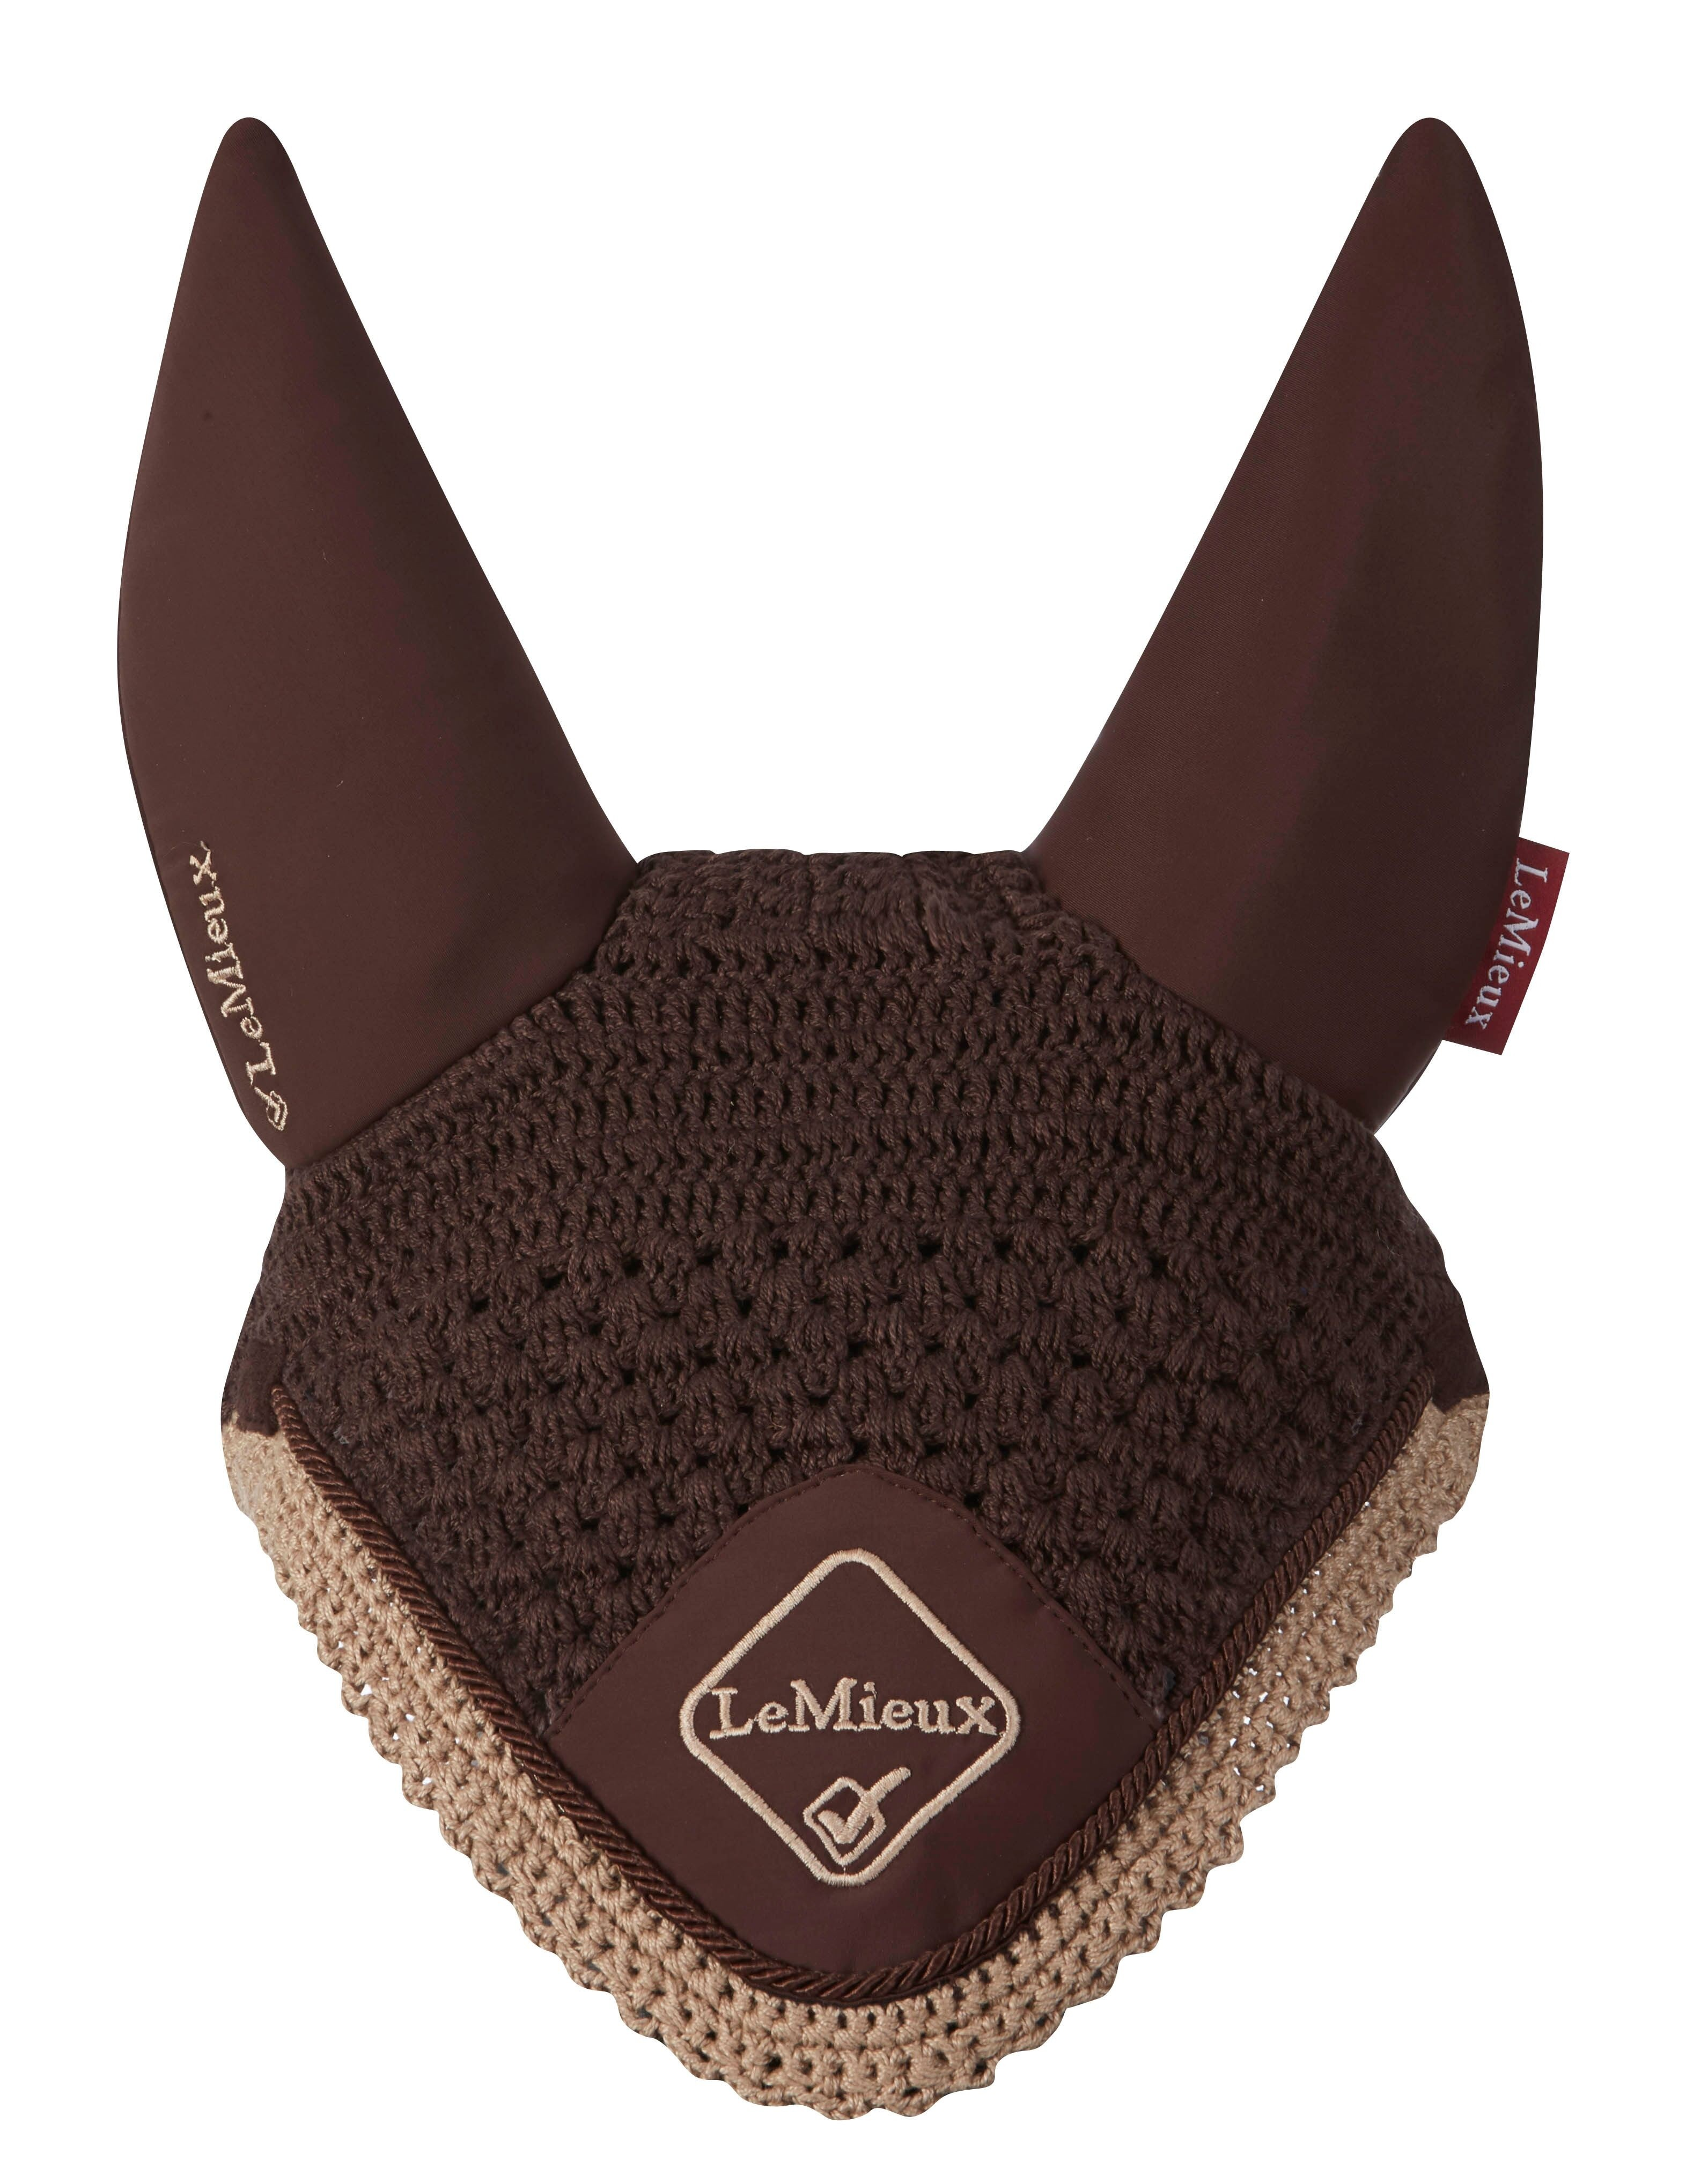 LeMieux Classic Acoustic Fly Hood  - Thomas Irving's equestrian and accessories store  LeMieux Classic Acoustic Fly Hood